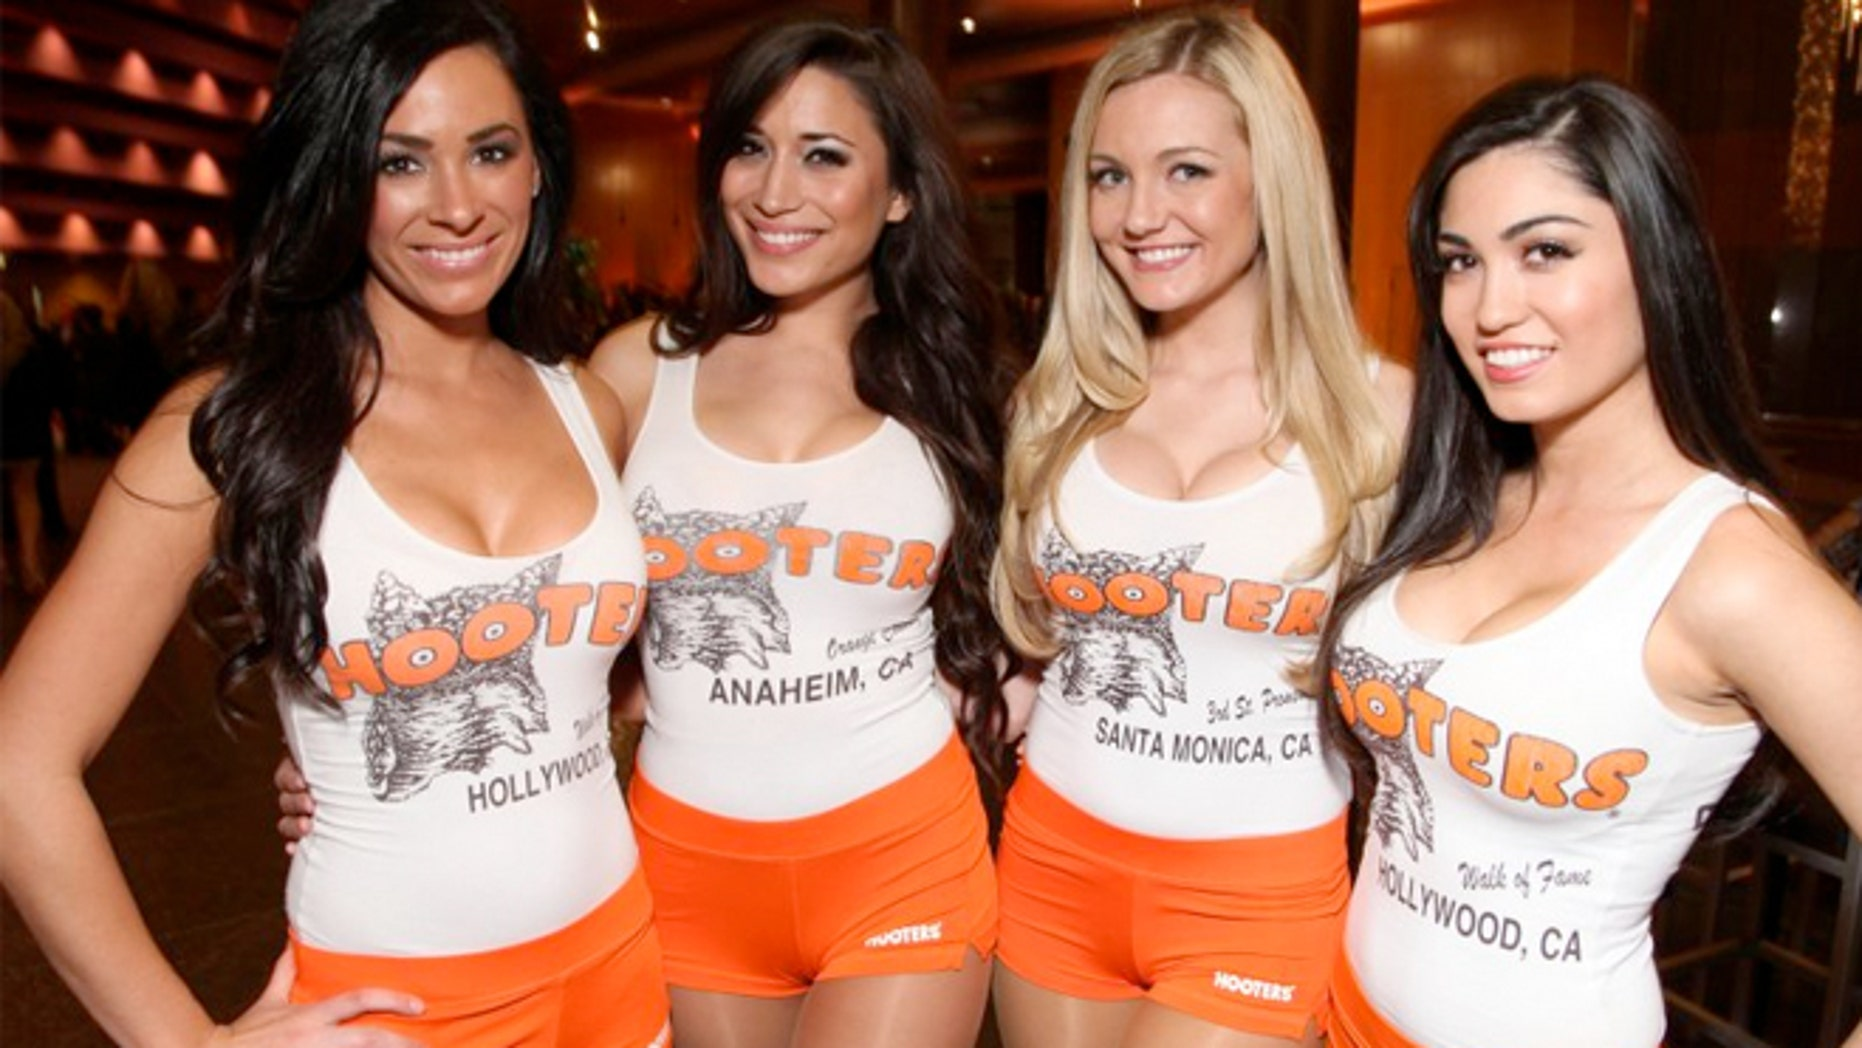 """The school is asking students """"to consider both what Hooters represents and whether that is something they really want to support in terms of both their faith and the value this business model places on women."""""""